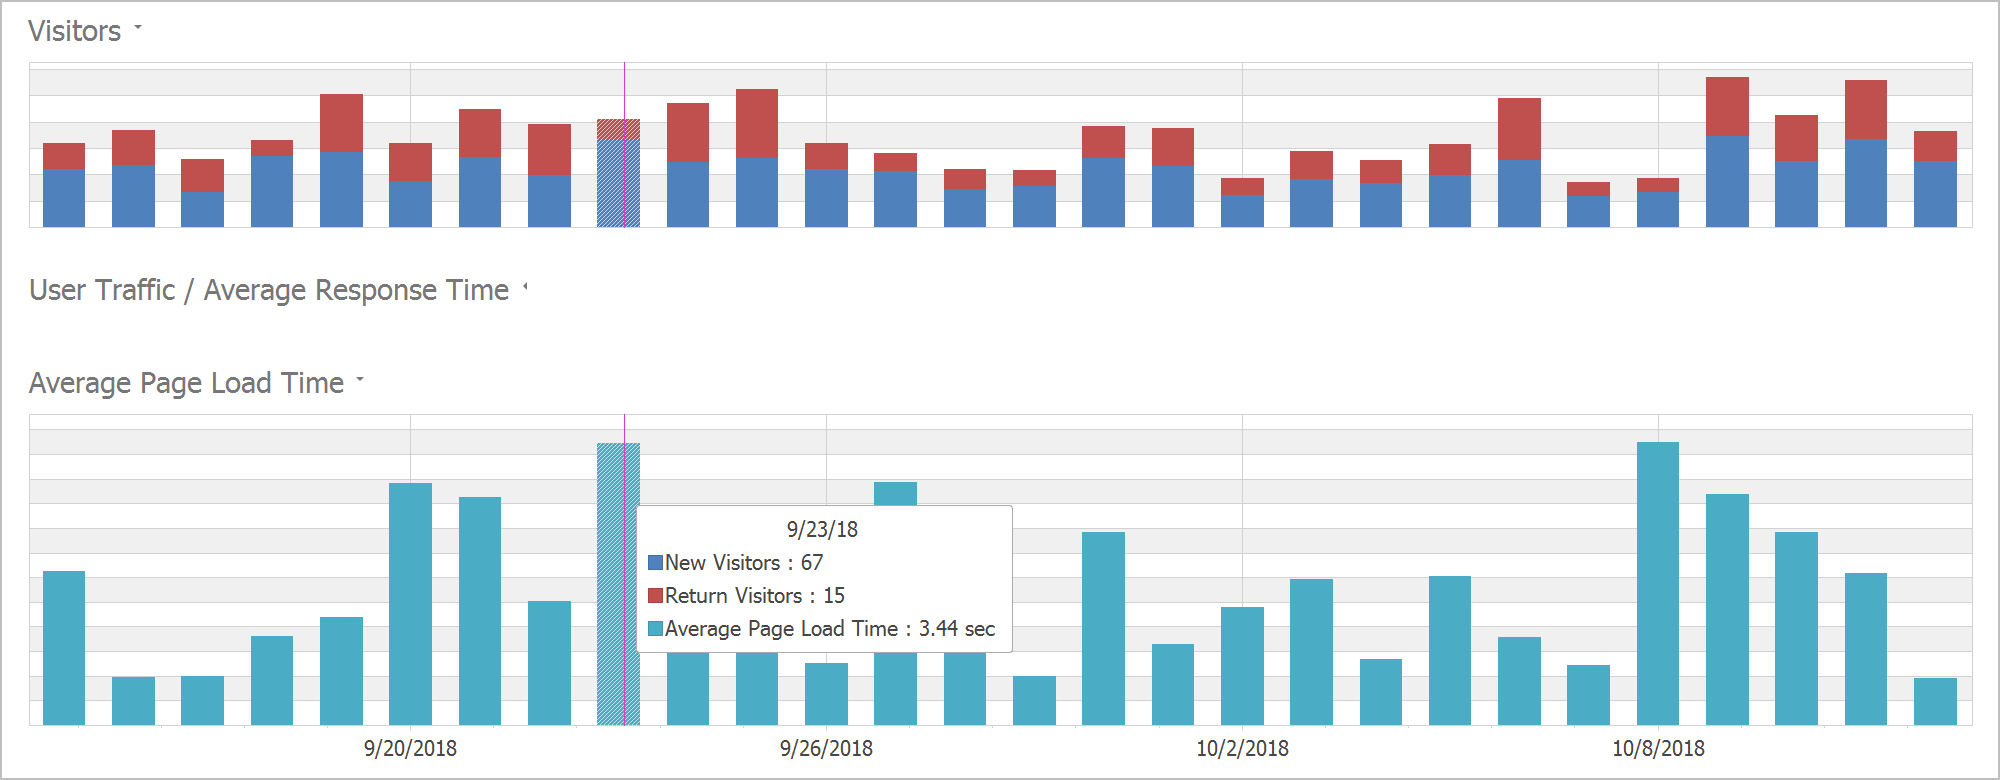 Pane Titles - WinForms Charting, DevExpress